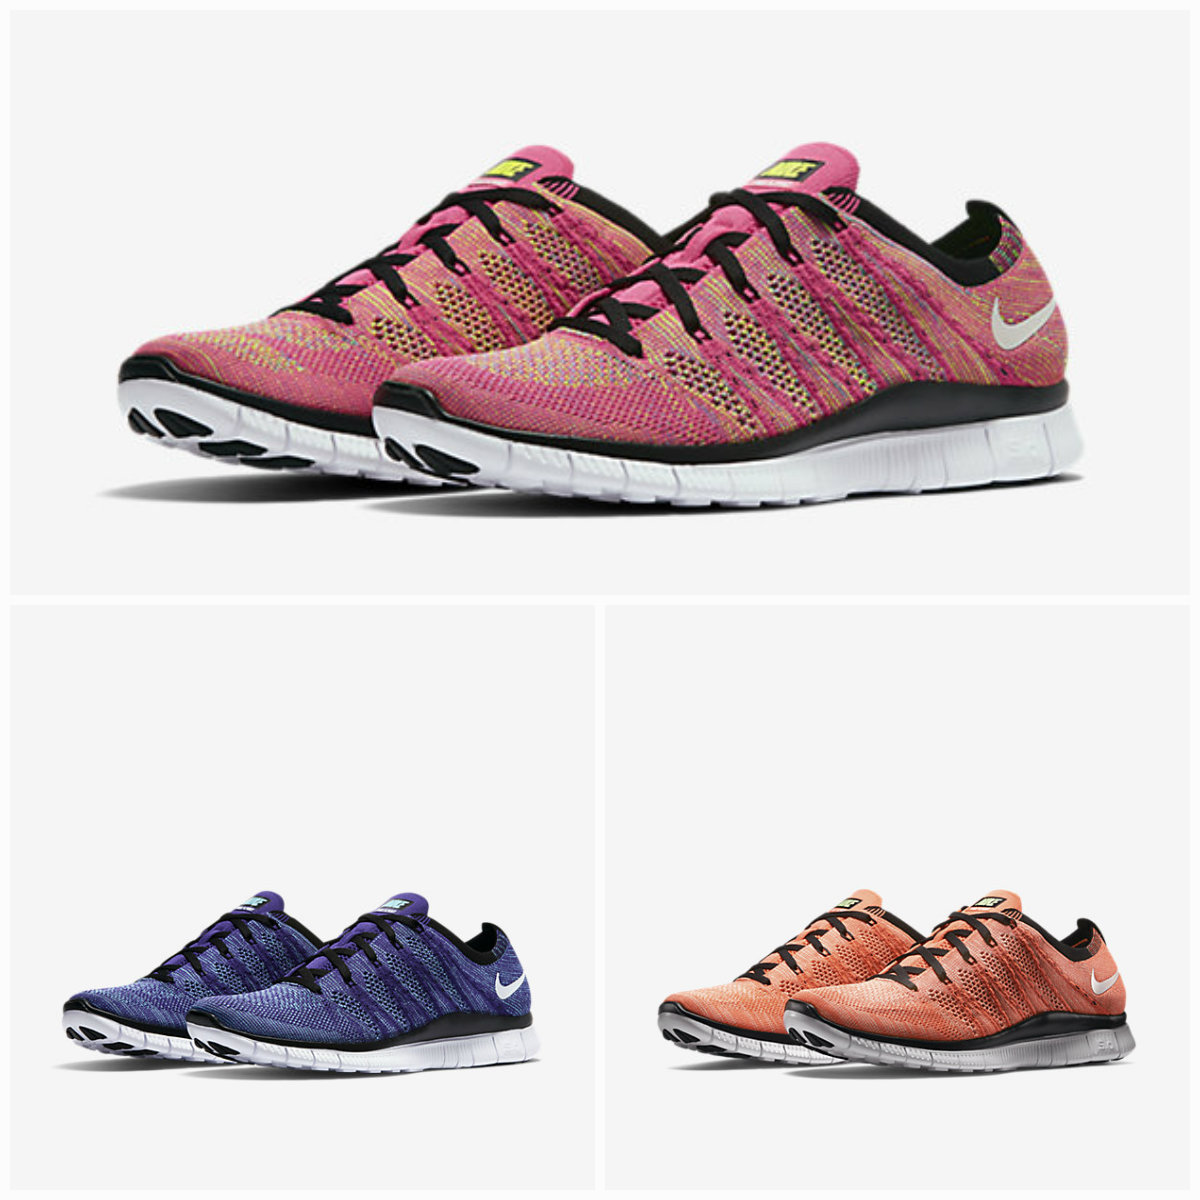 1f0cfd2f51a57 Nike Free Flyknit NSW - Available Now - WearTesters